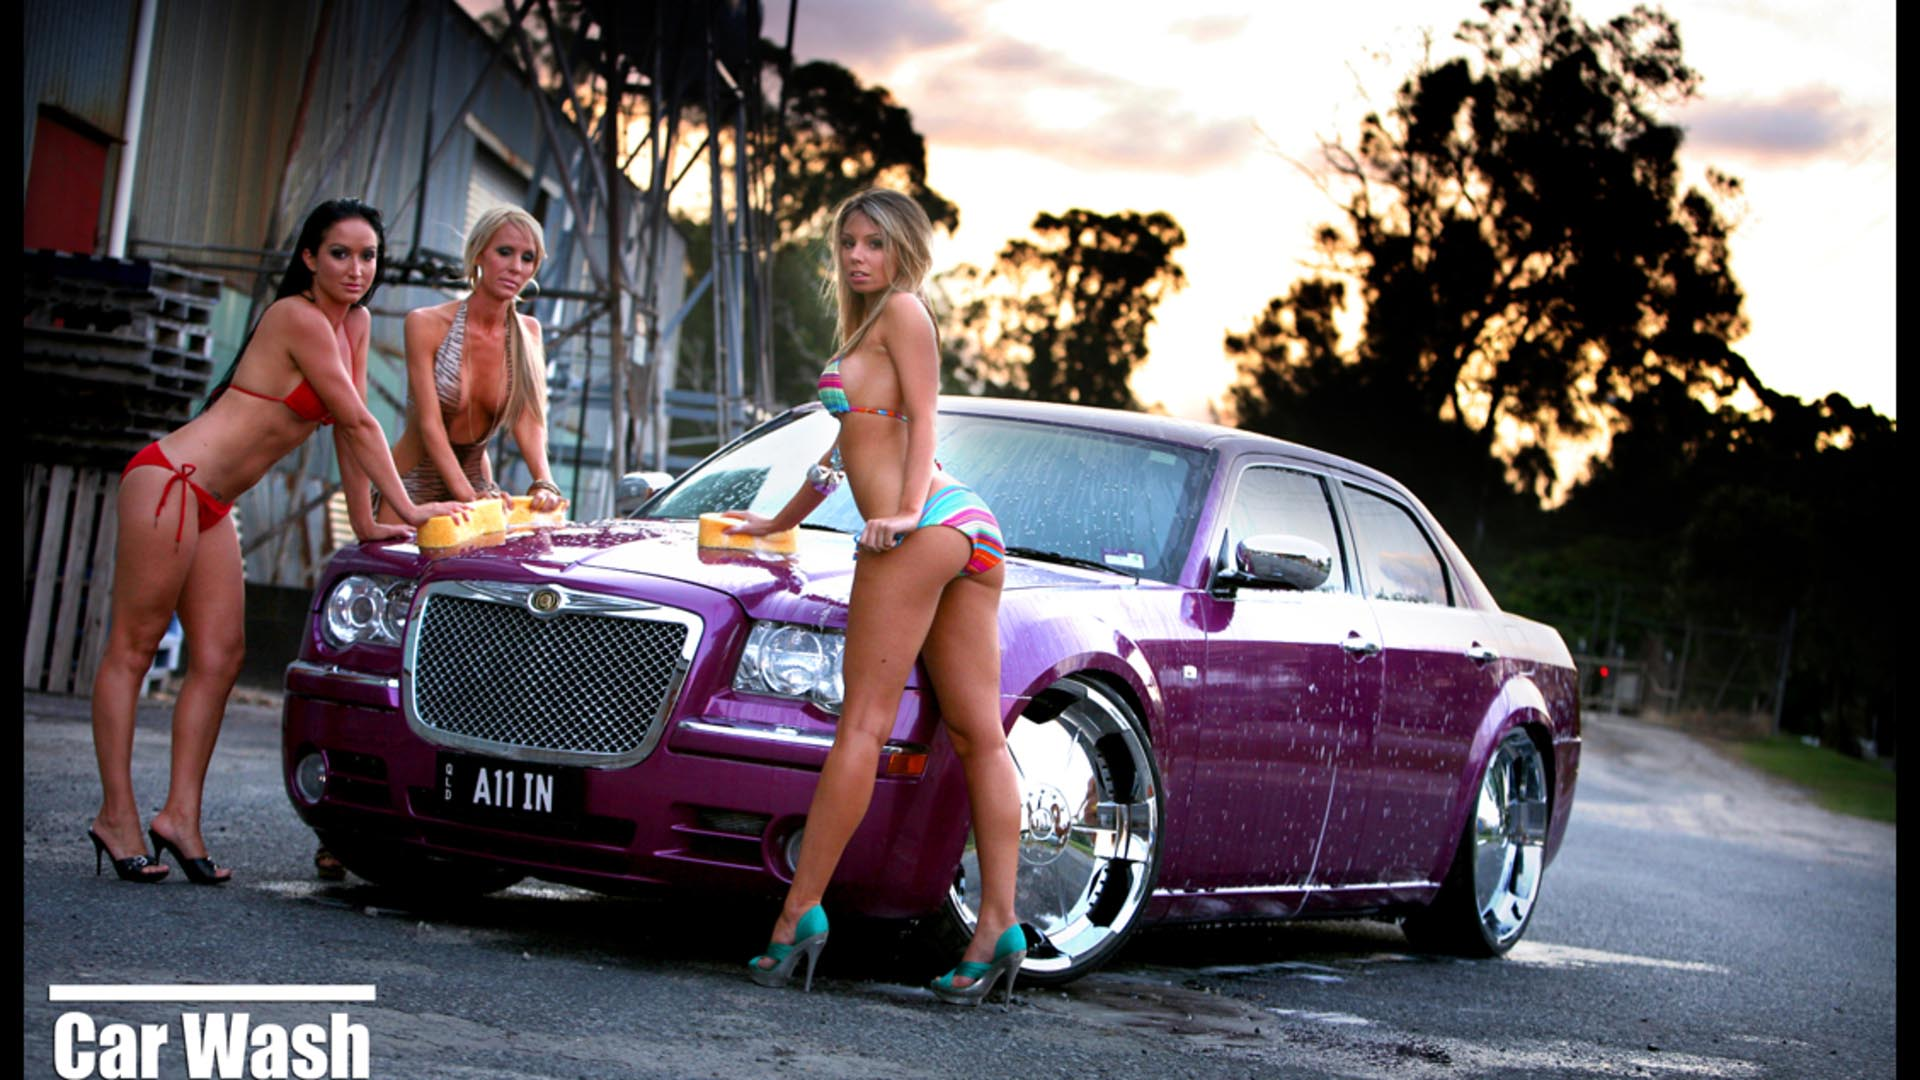 Car babe pictures